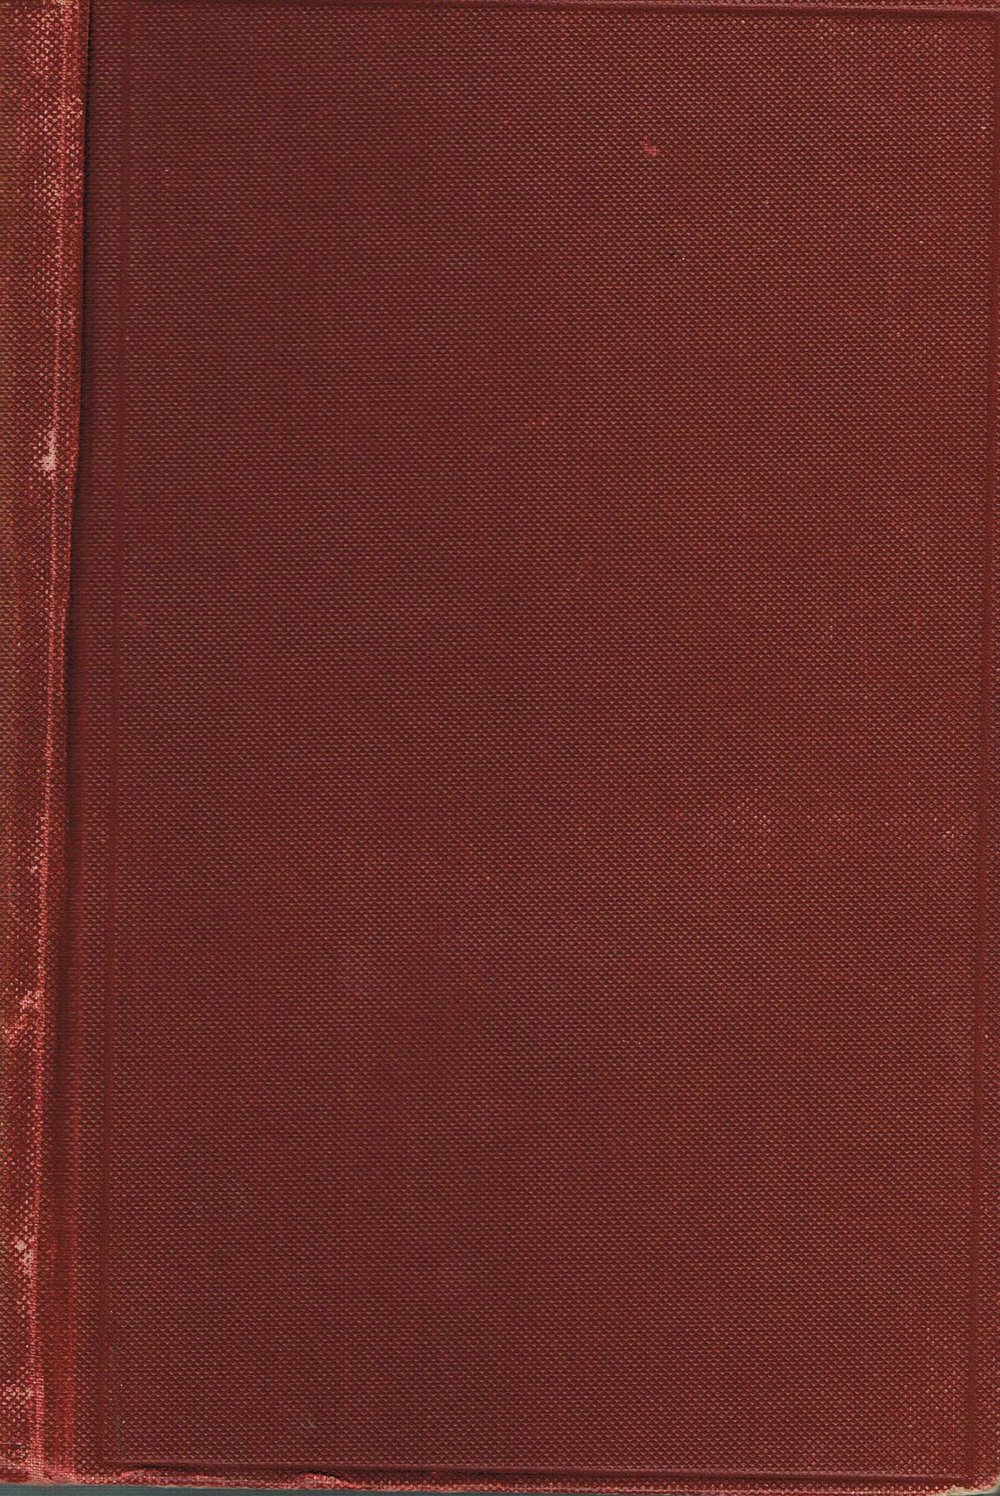 Official History of Australia in the War of 1914 - 18 : Photographic record of the war NA